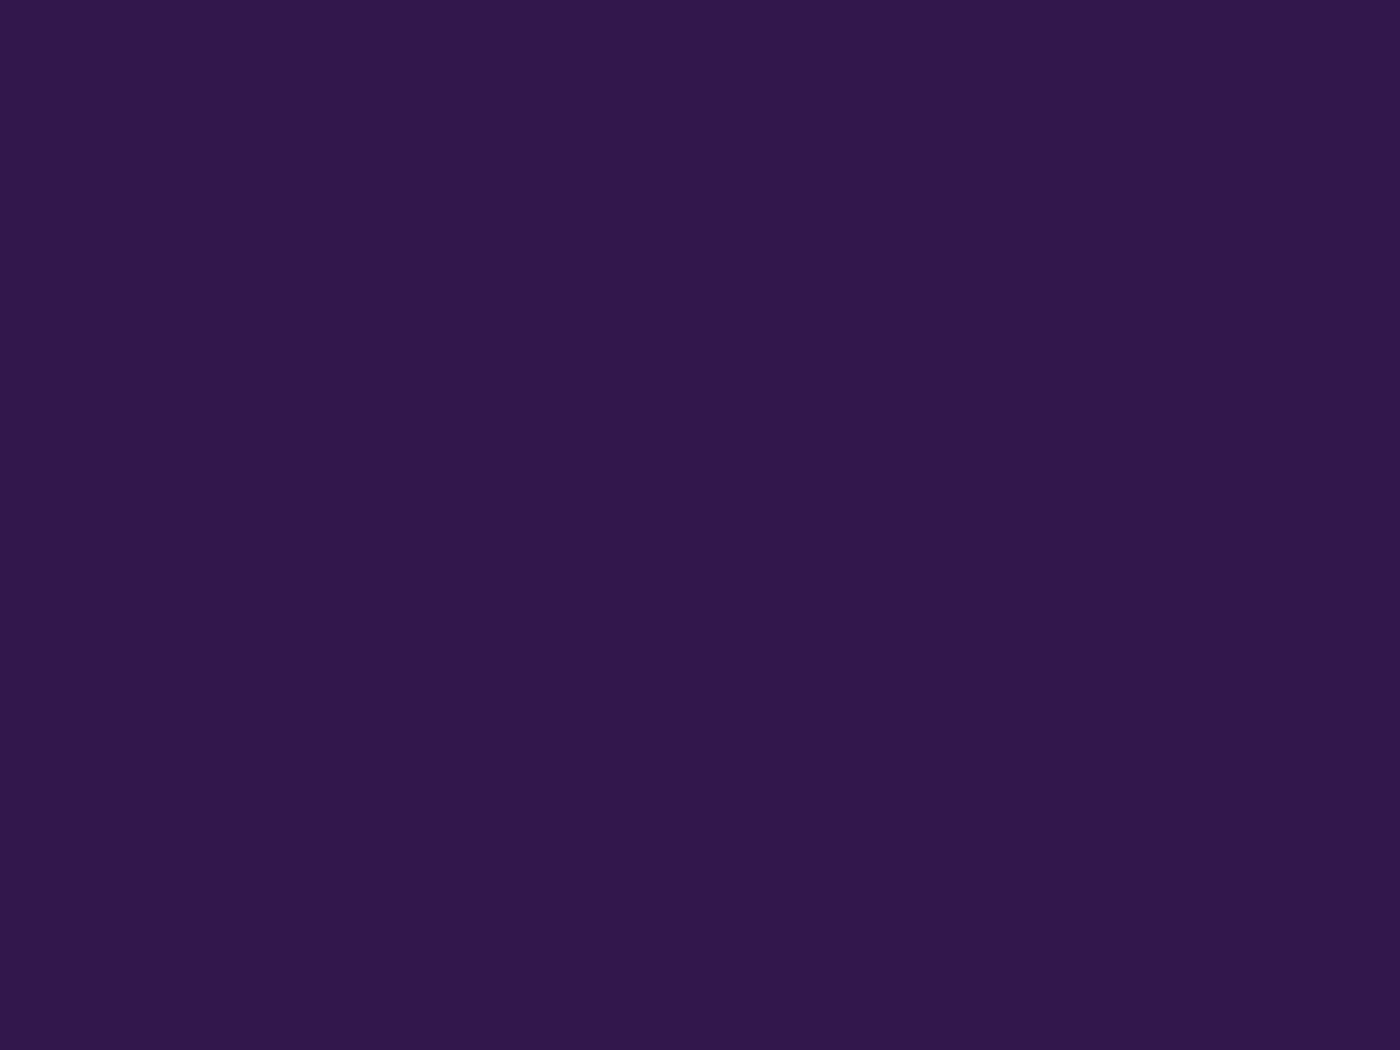 1400x1050 Russian Violet Solid Color Background